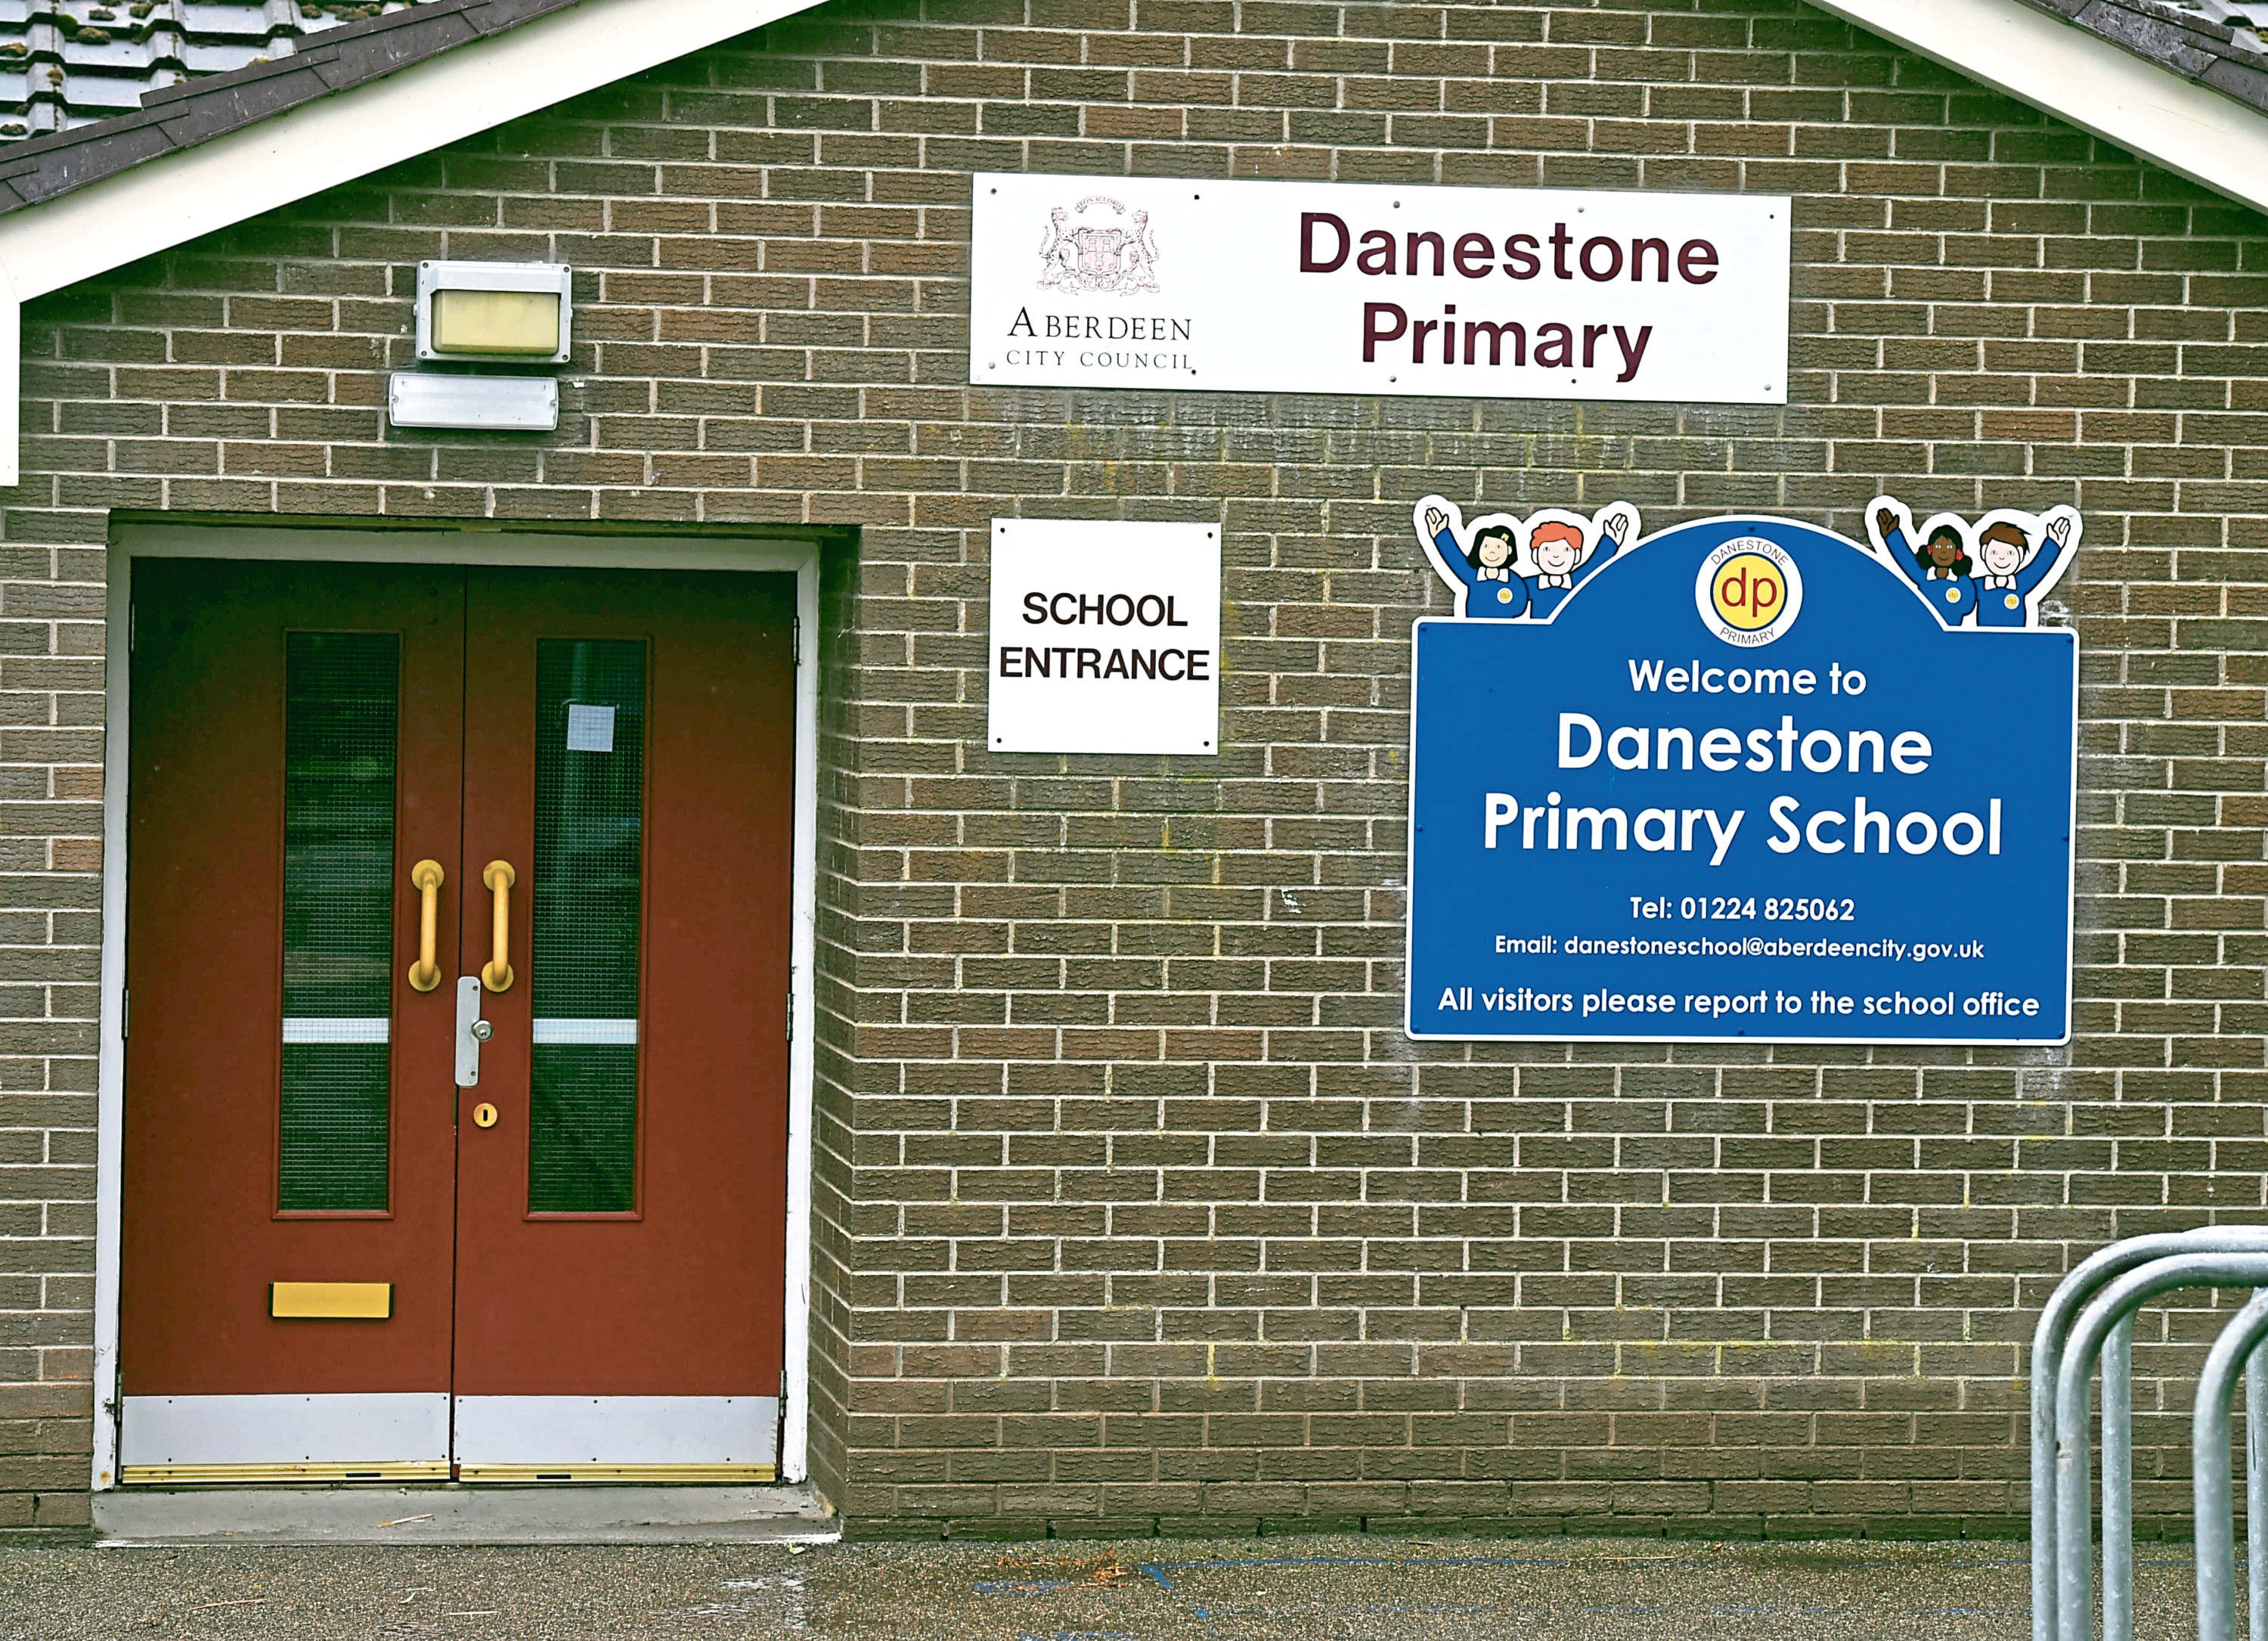 Plans have been submitted to create a new nursery at Danestone Primary School